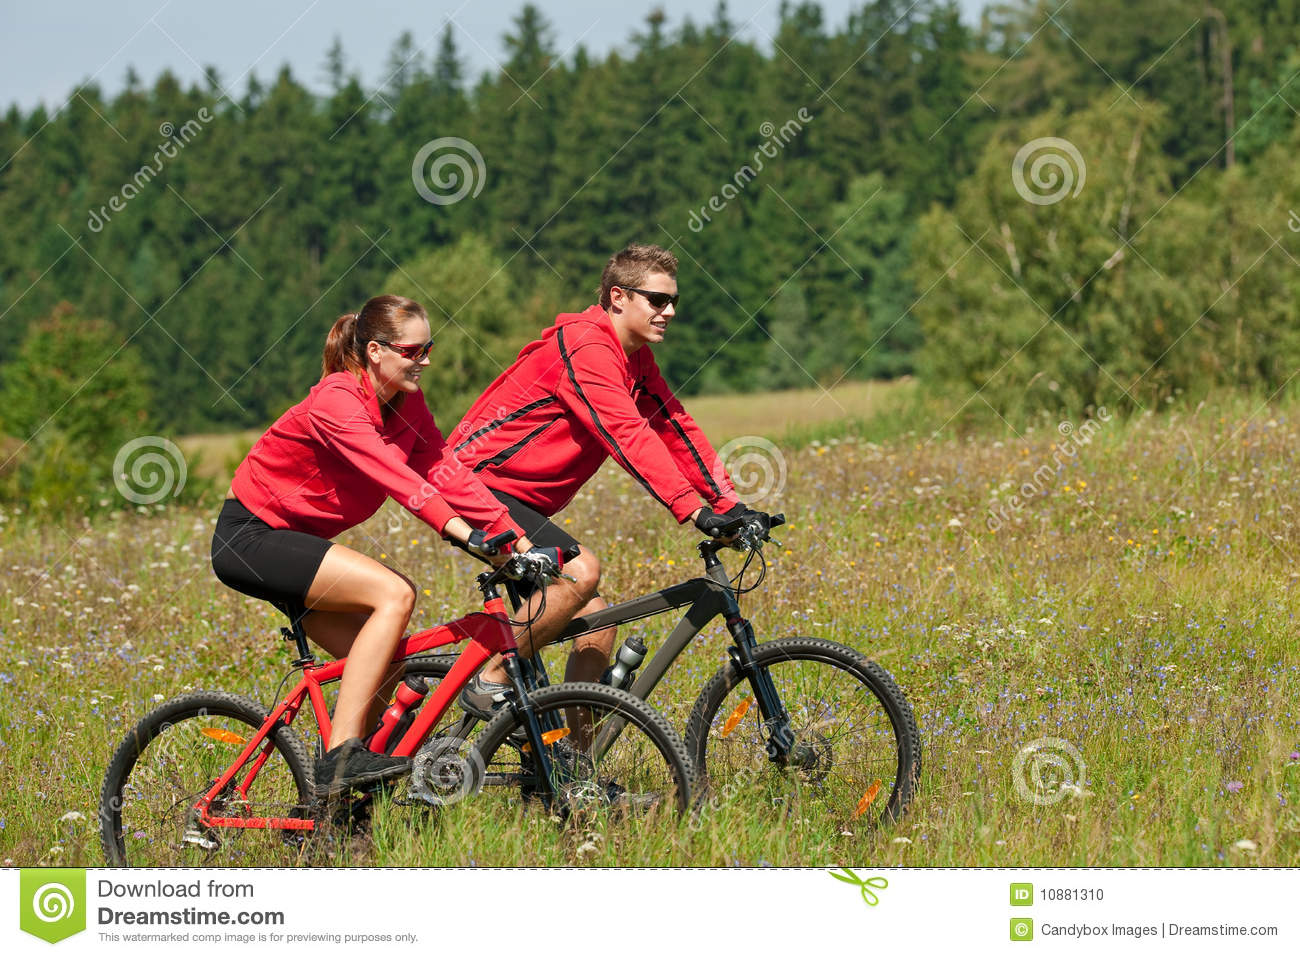 Summer - Young couple riding bike in summer